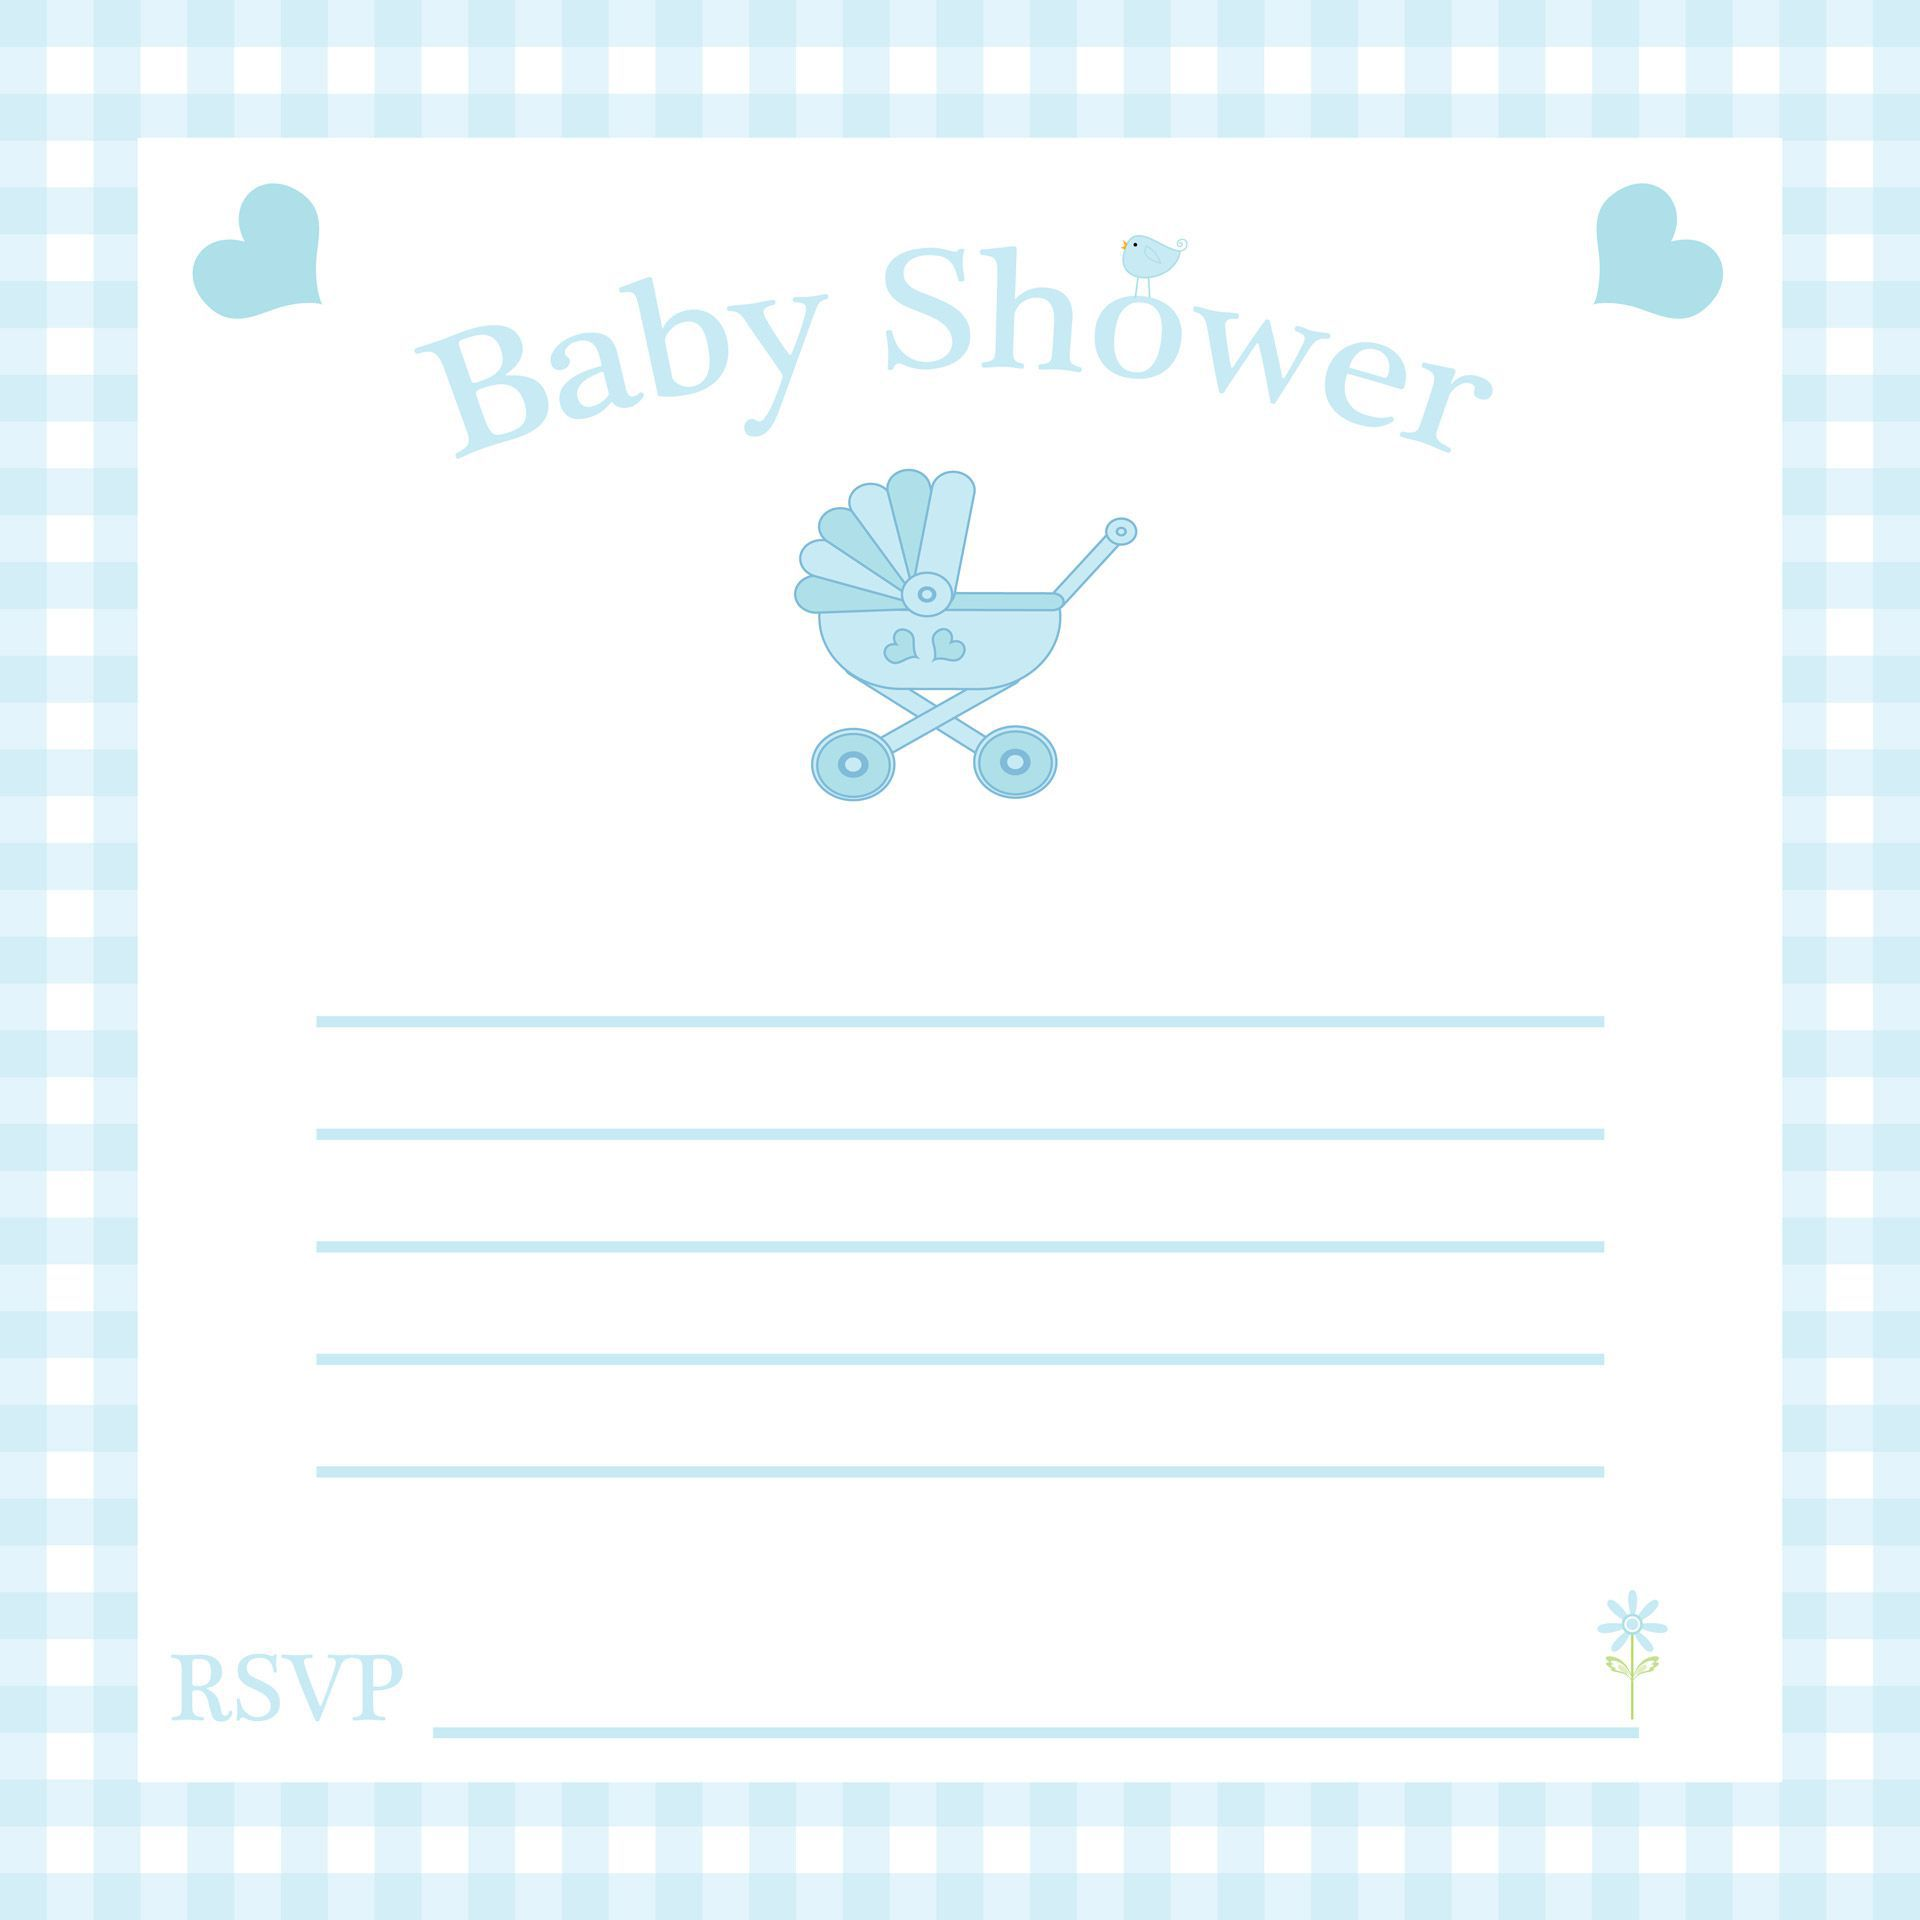 Full Size of Baby Shower:sturdy Baby Shower Invitation Template Image Concepts Baby Shower Invitation Template Baby Shower Goodie Bags Baby Shower Poems Baby Shower Ideas For Boys Baby Shower Favors To Make